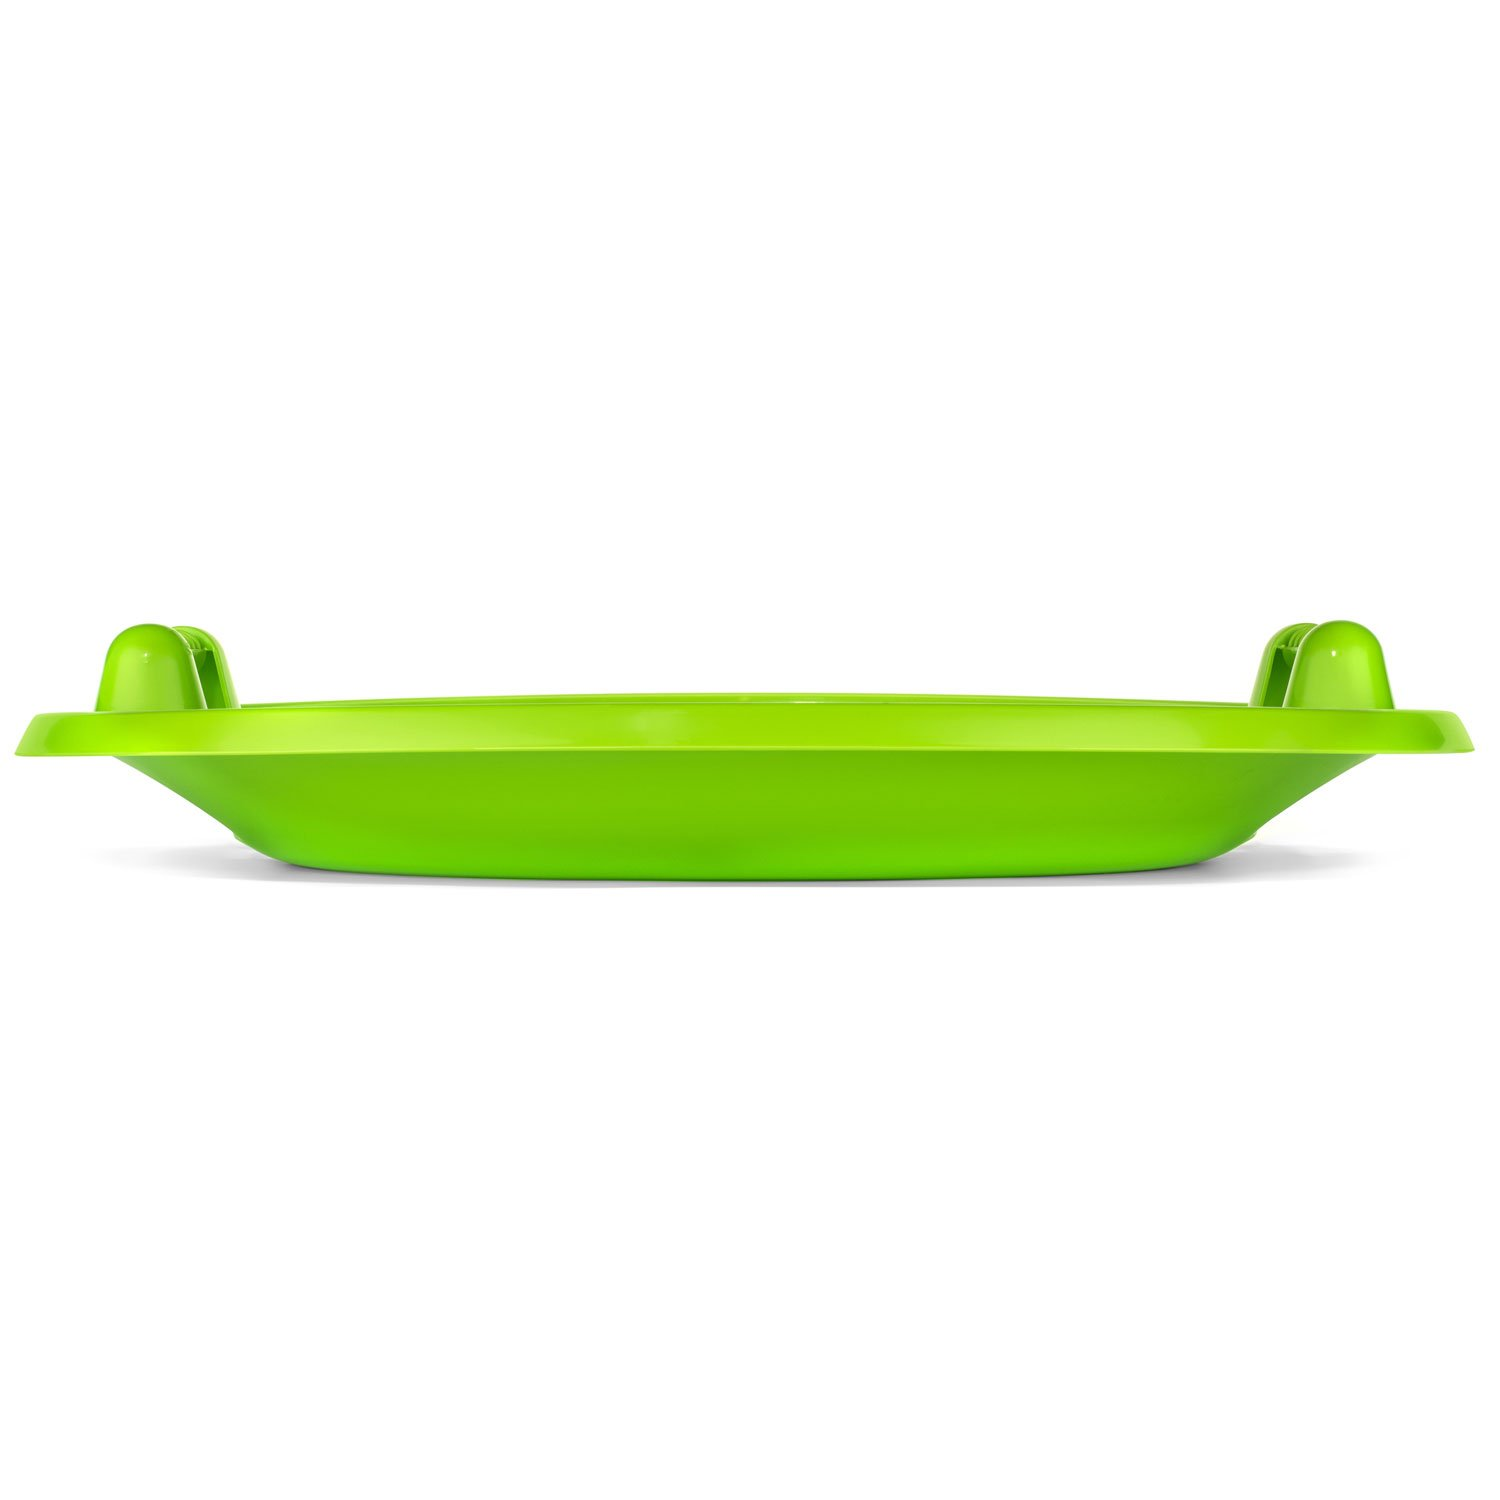 Lucky Bums Plastic Saucer Sled, 25-Inch Diameter, Green